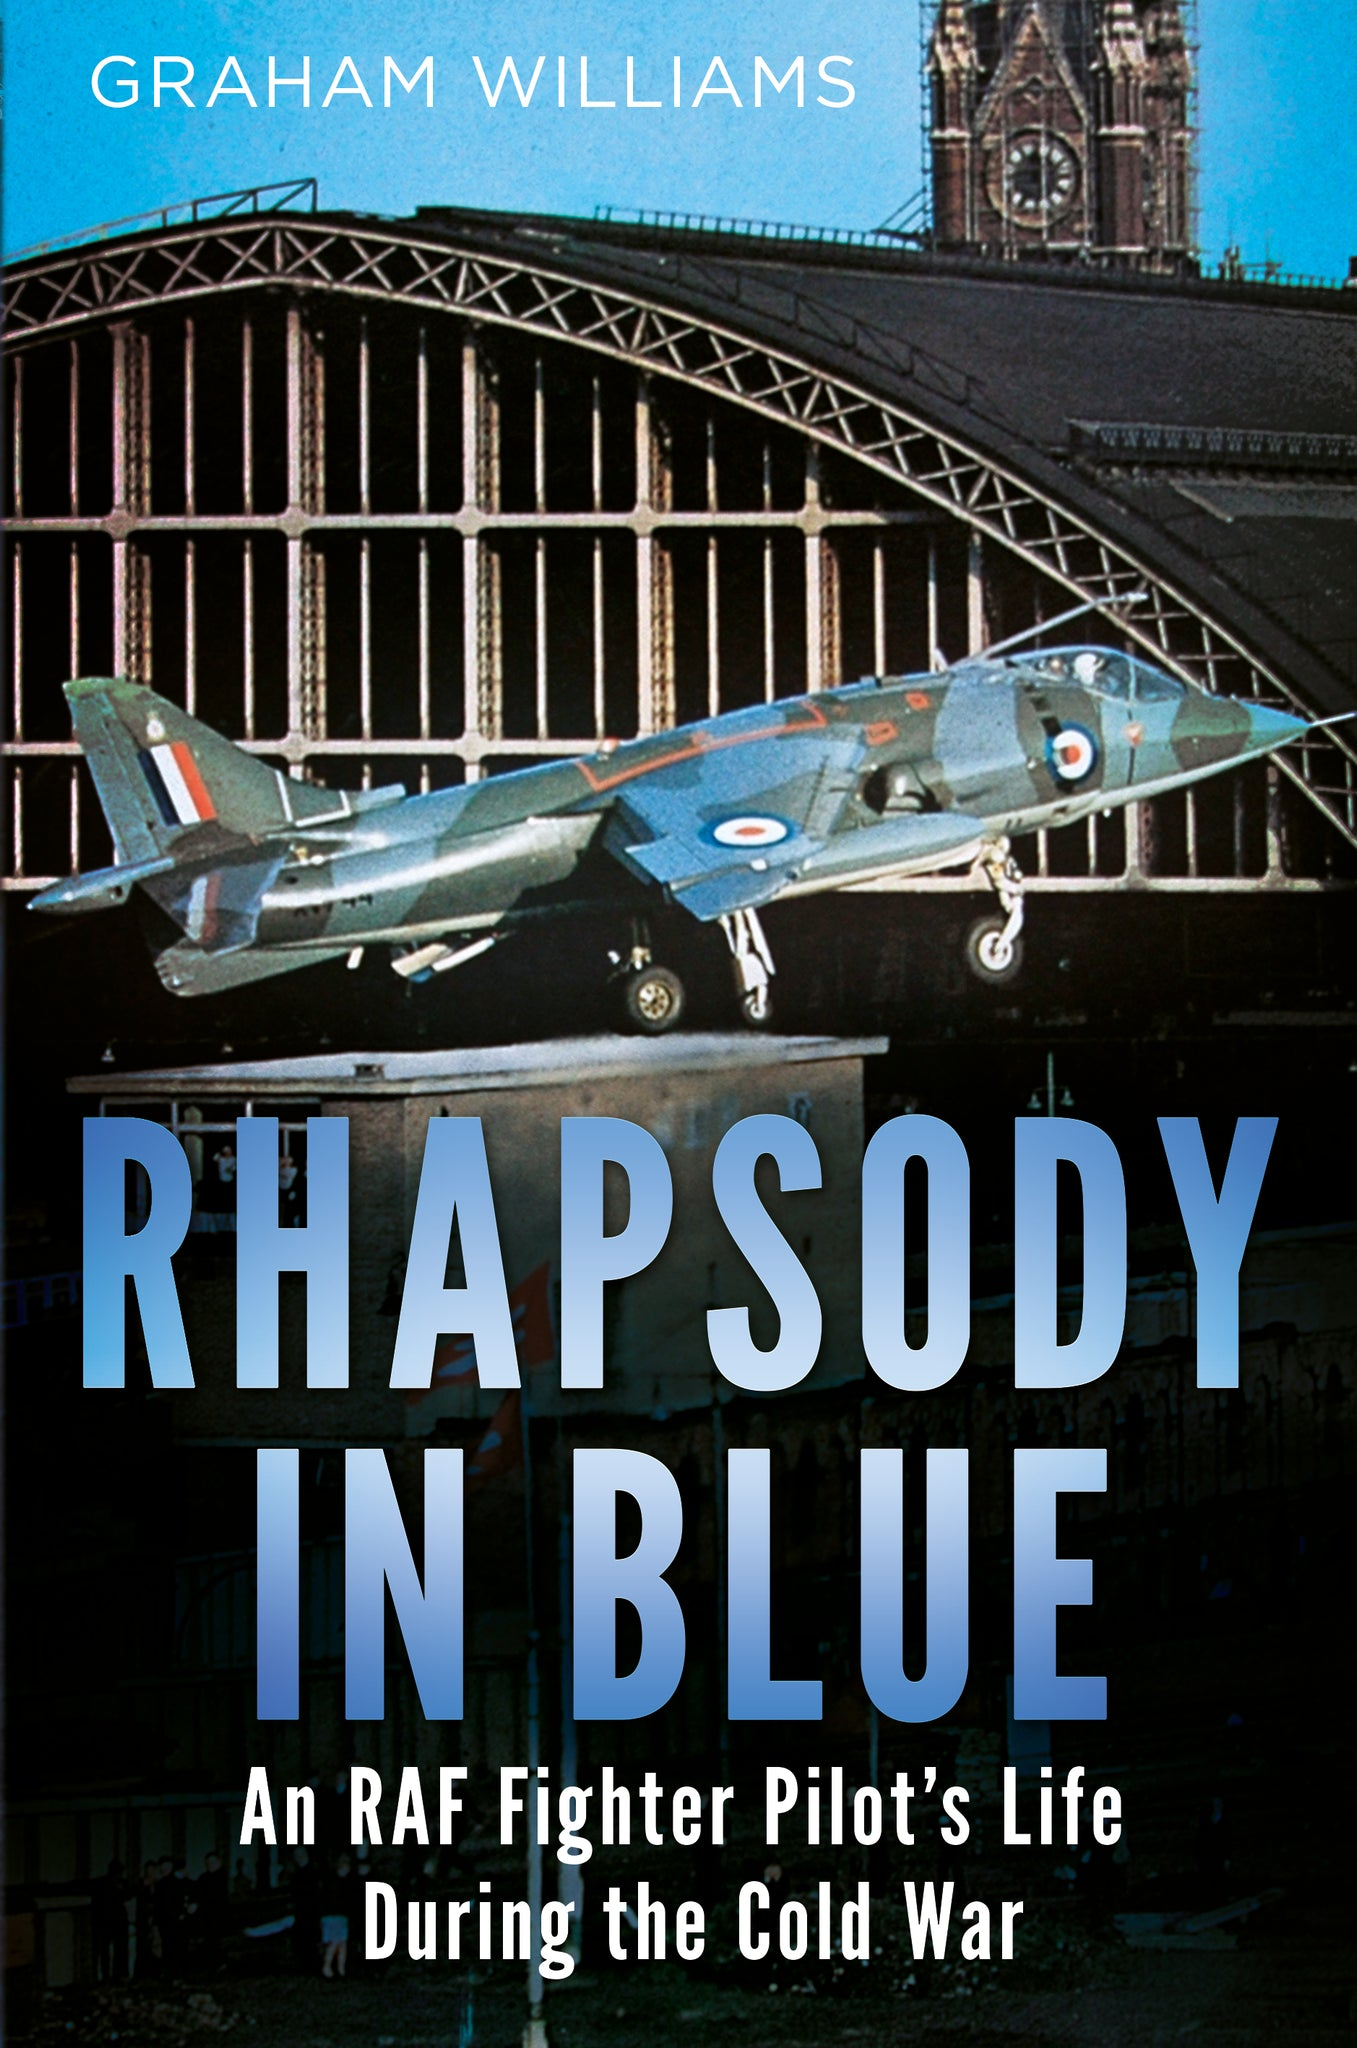 Rhapsody in Blue: An RAF Fighter Pilot's Life During the Cold War (hardback edition)